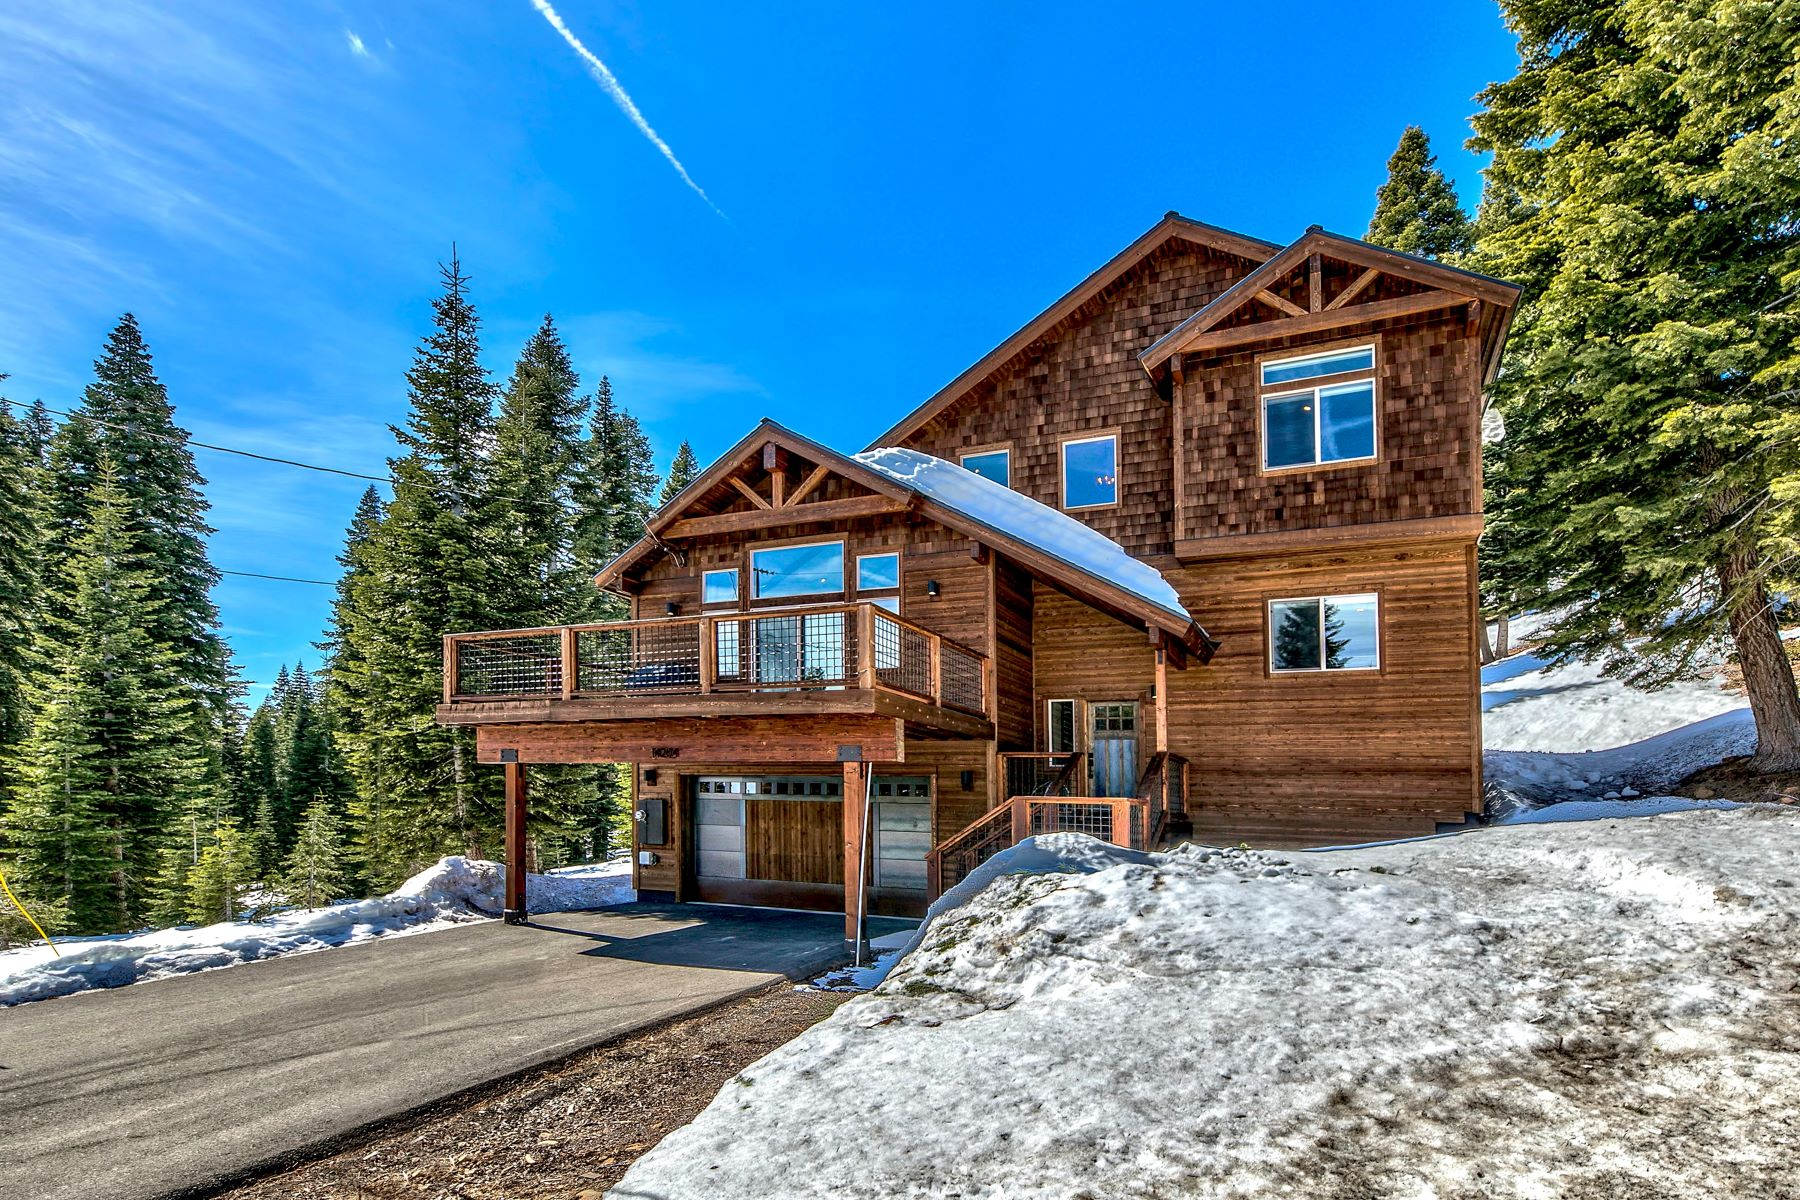 Single Family Homes for Active at Magnificent Tahoe Donner Home 14204 Skislope Way Truckee, California 96161 United States